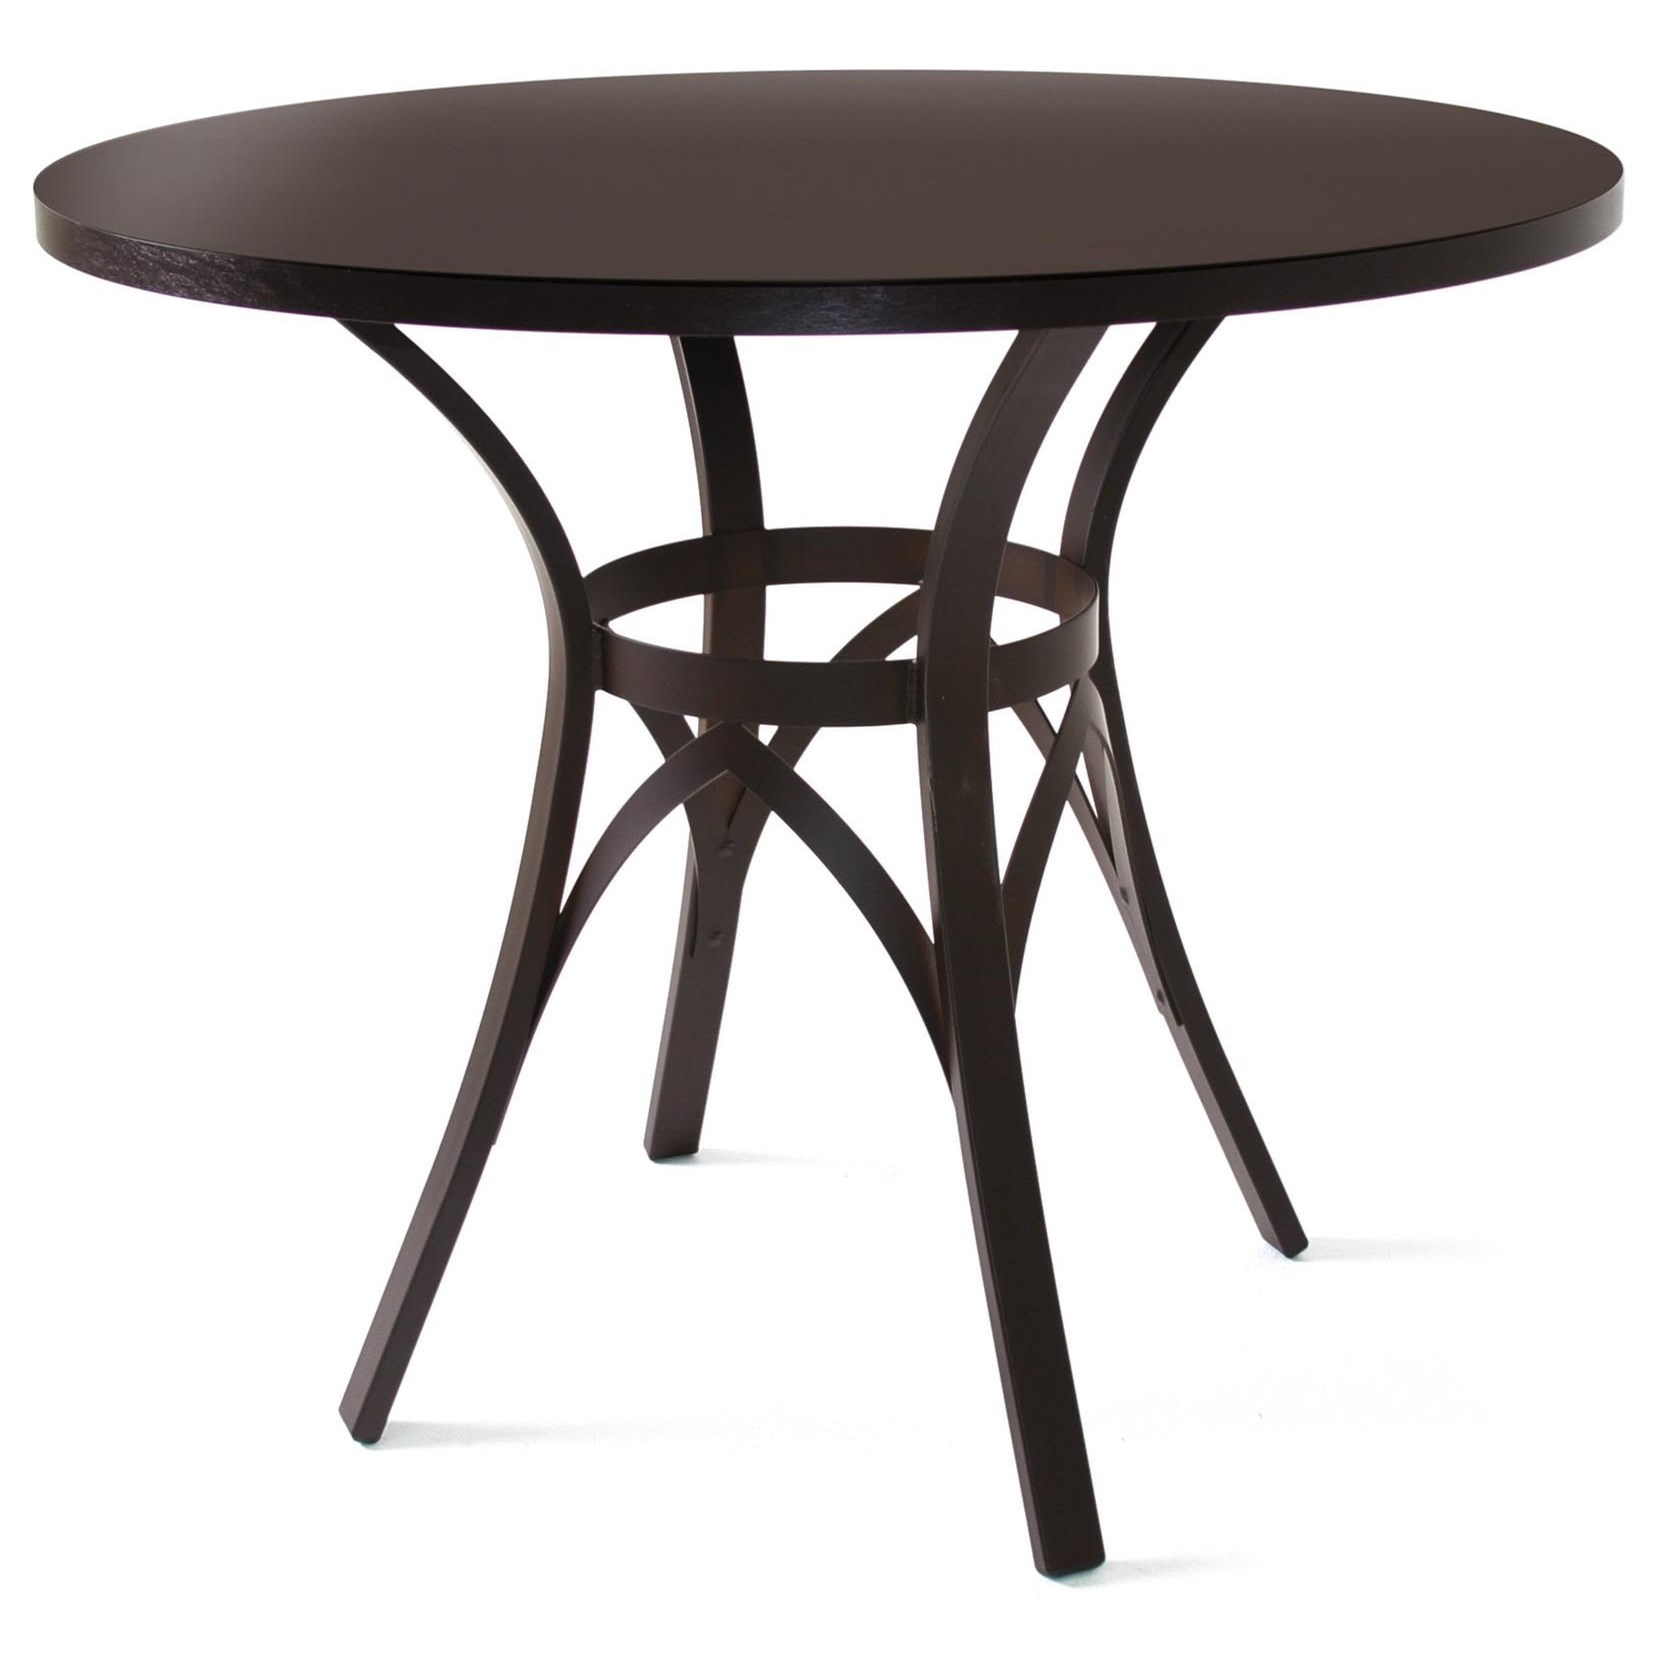 Countryside Kai Table with Wood Top by Amisco at Dinette Depot